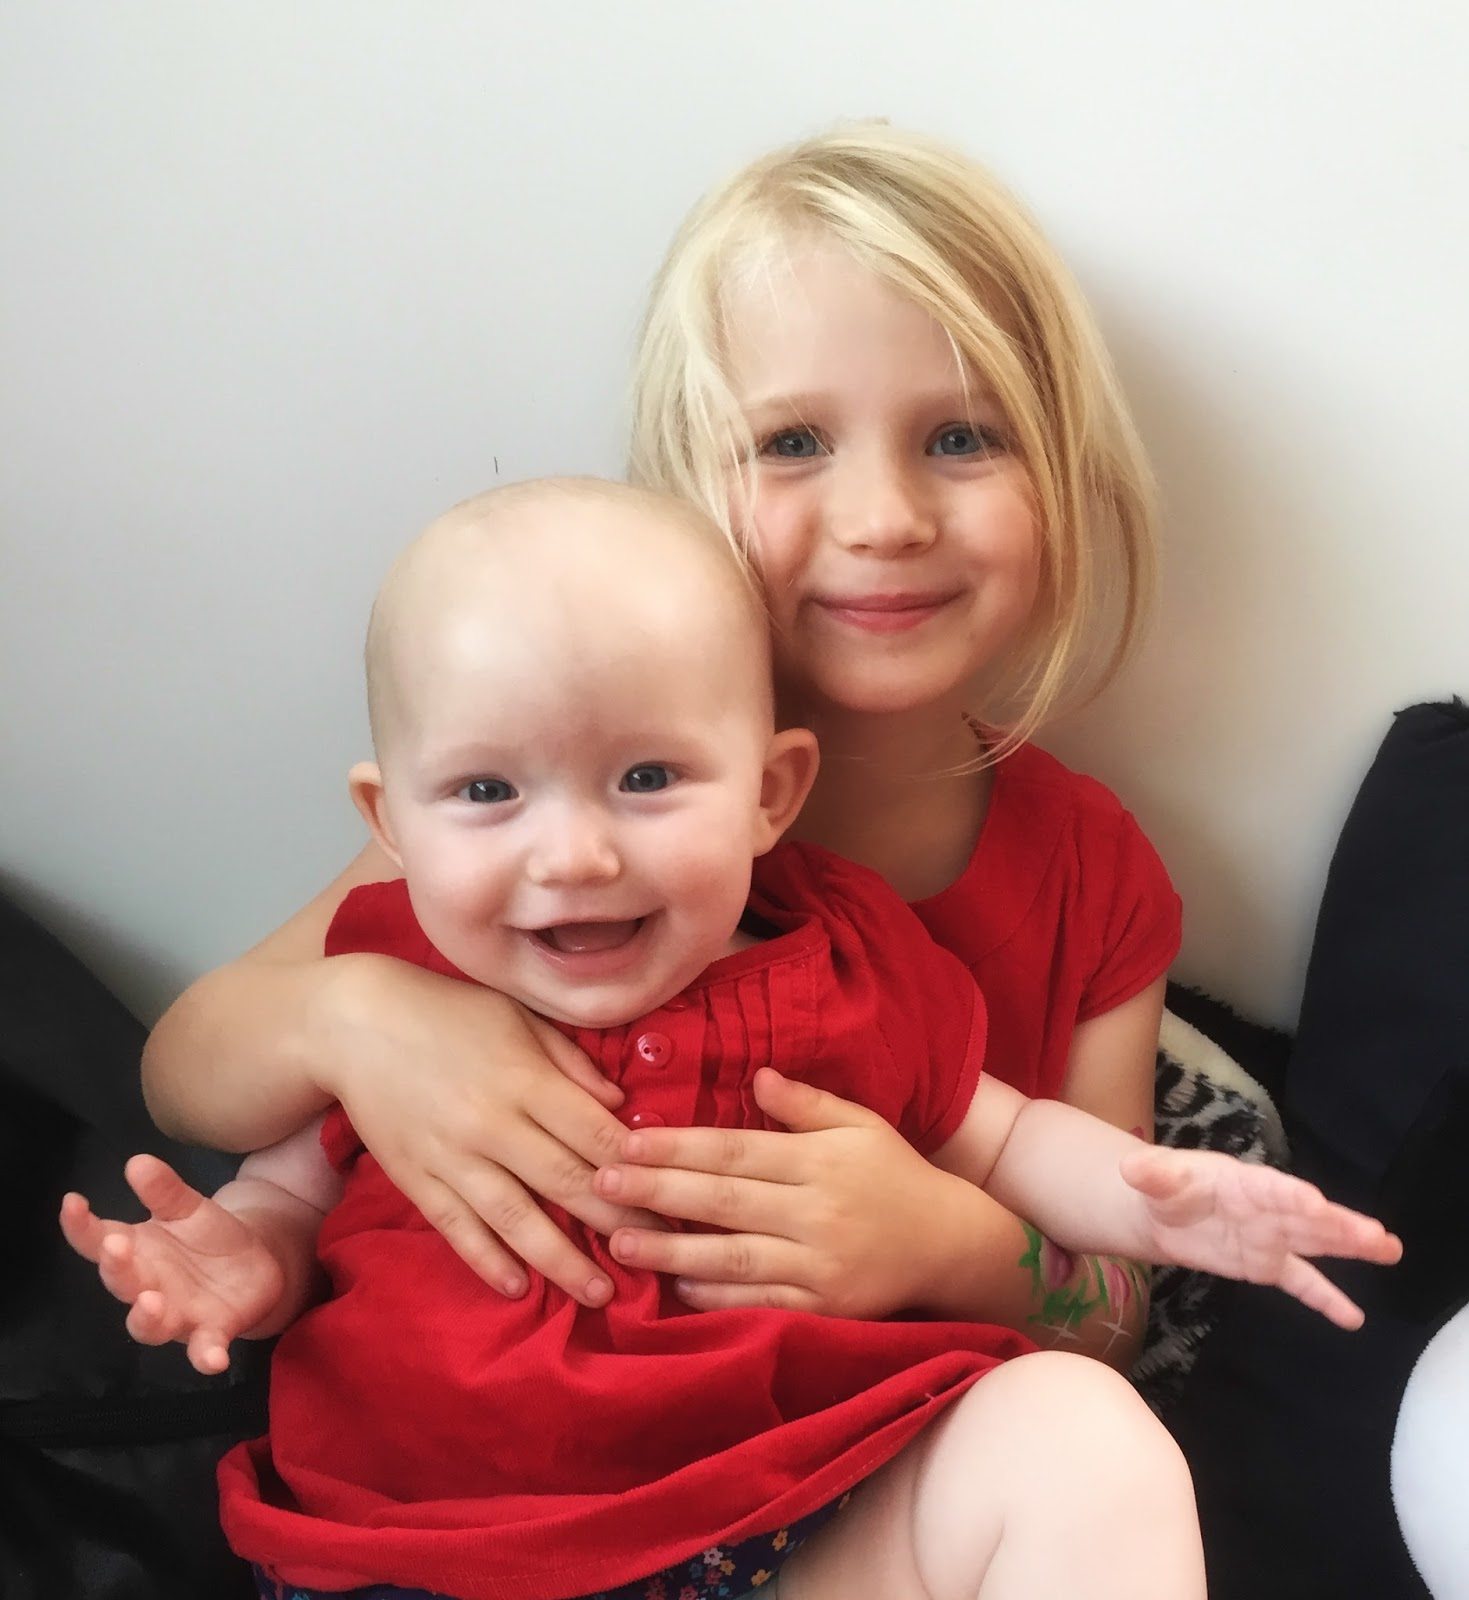 Two girls in red dresses. The older girl (M) is cuddling the baby (Little) who is smiling